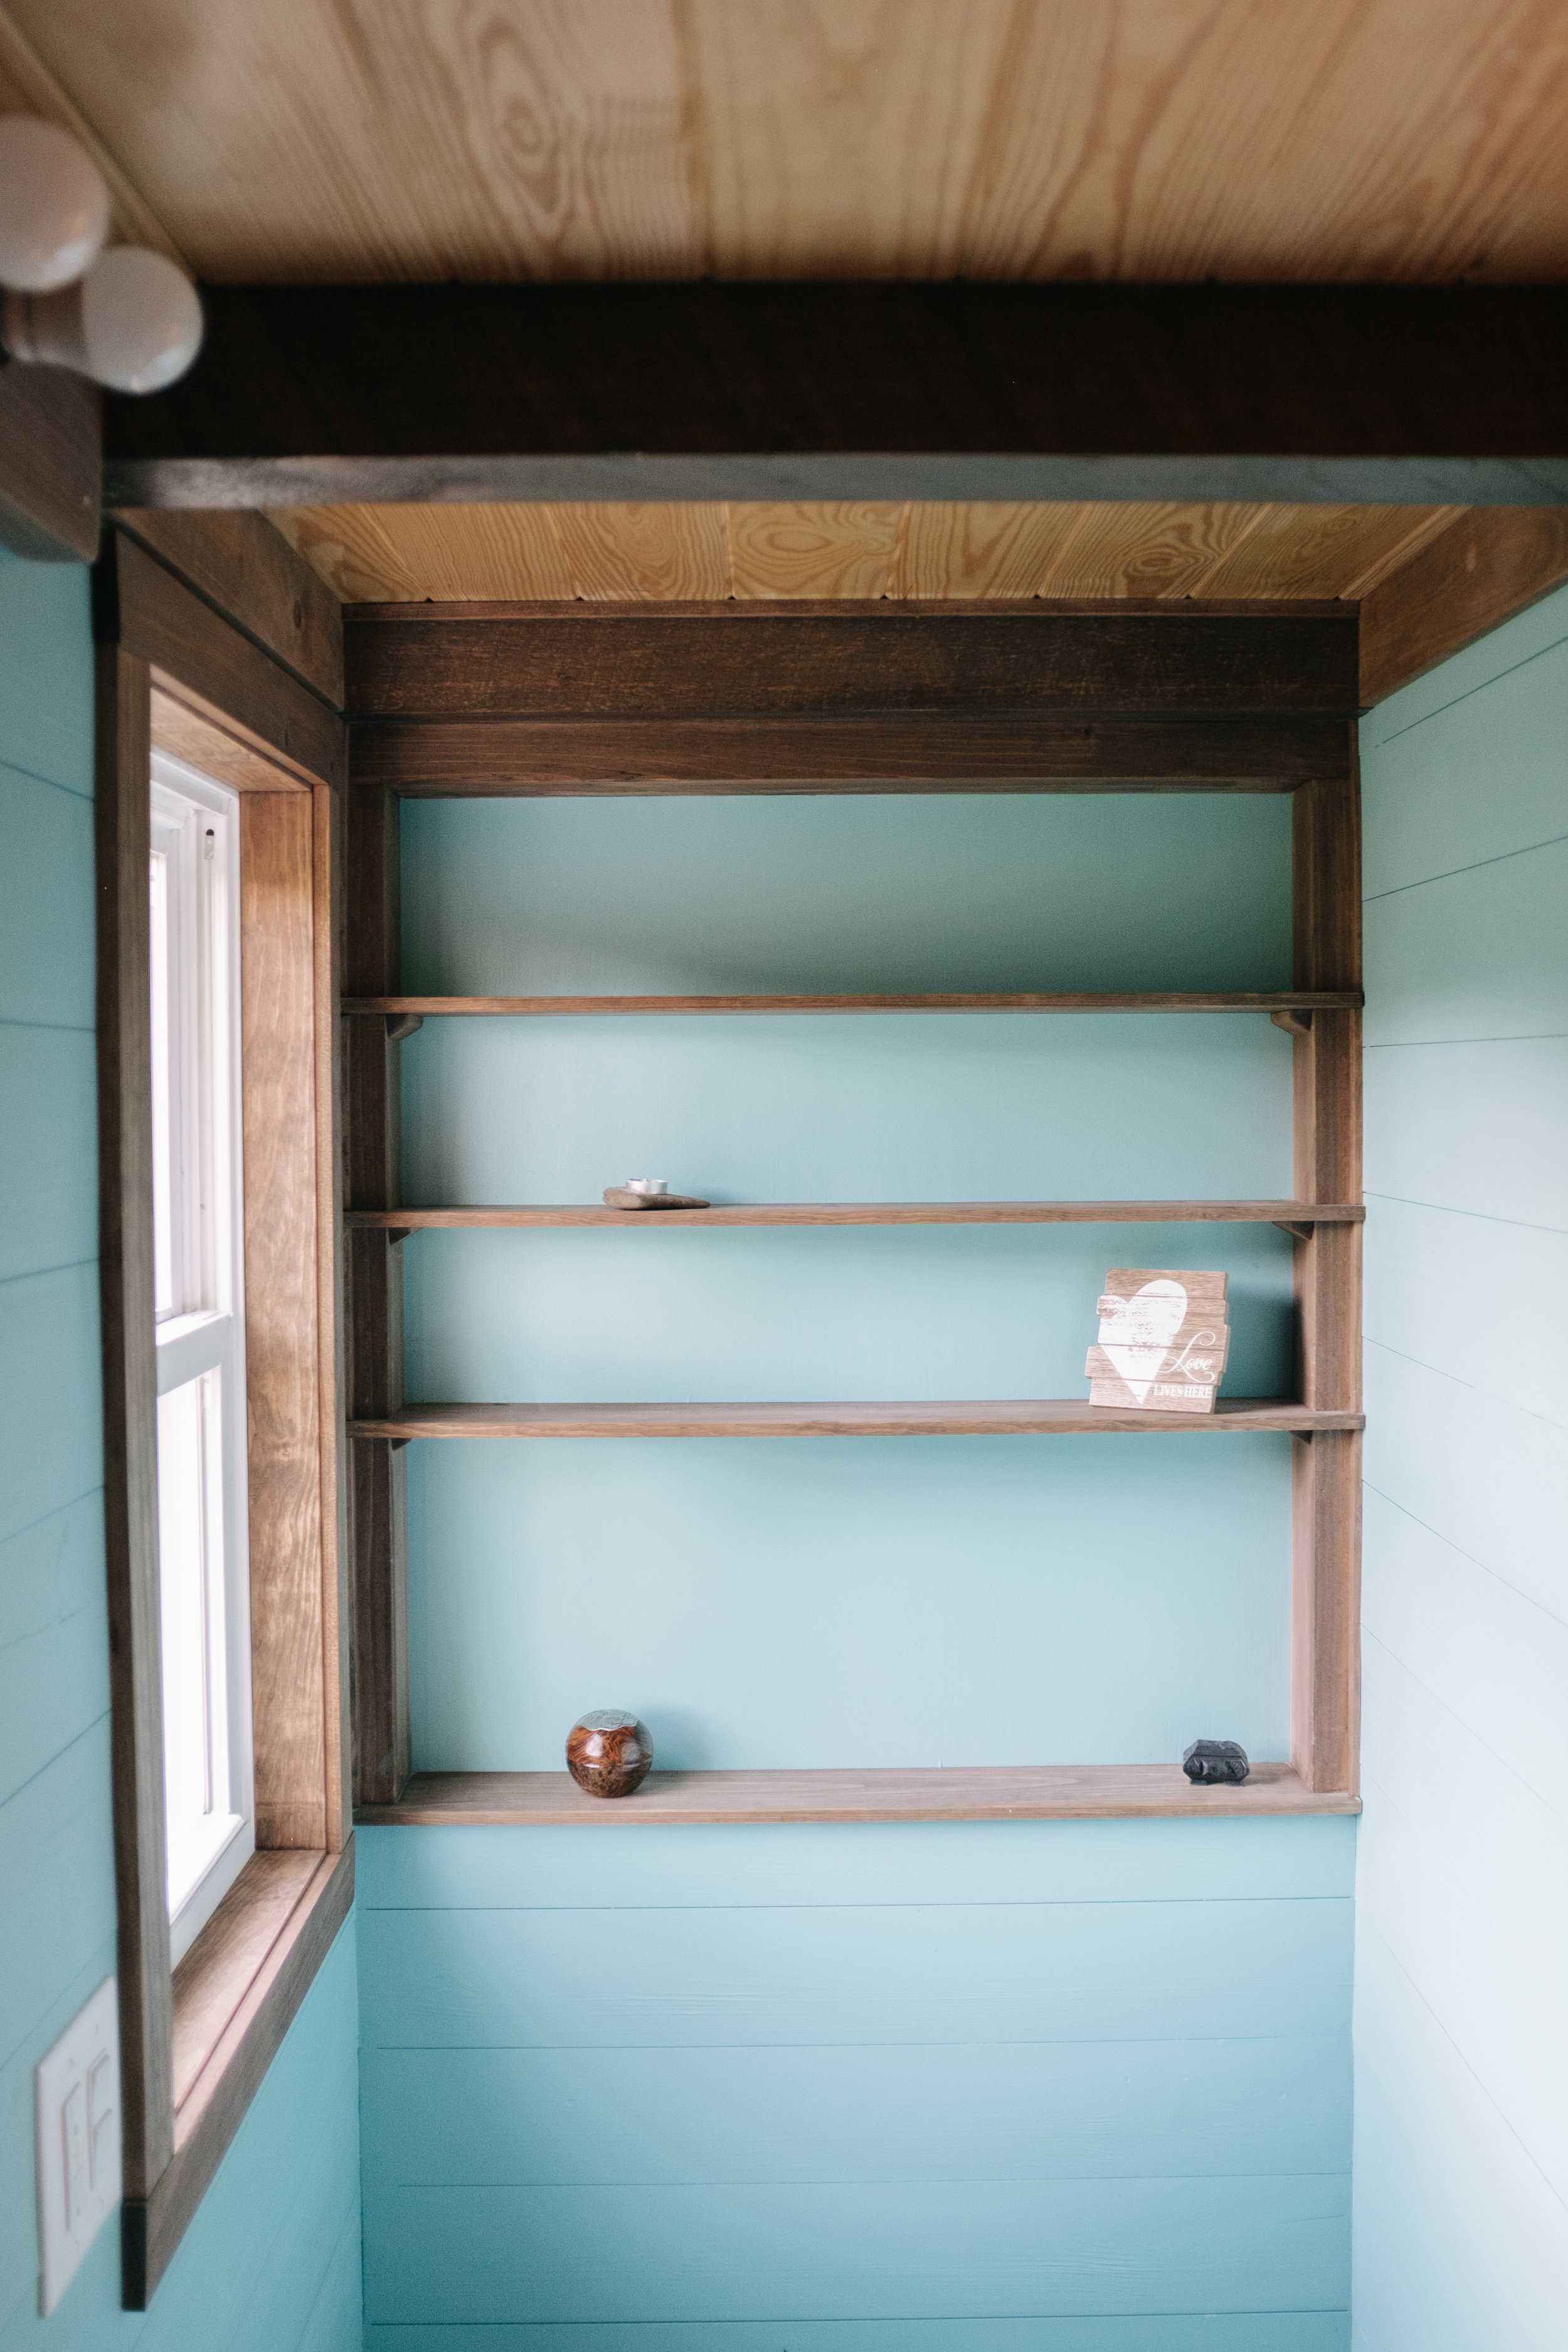 The Big Whimsy by Wind River Tiny Homes - bathroom shelving, natures head composting toilet